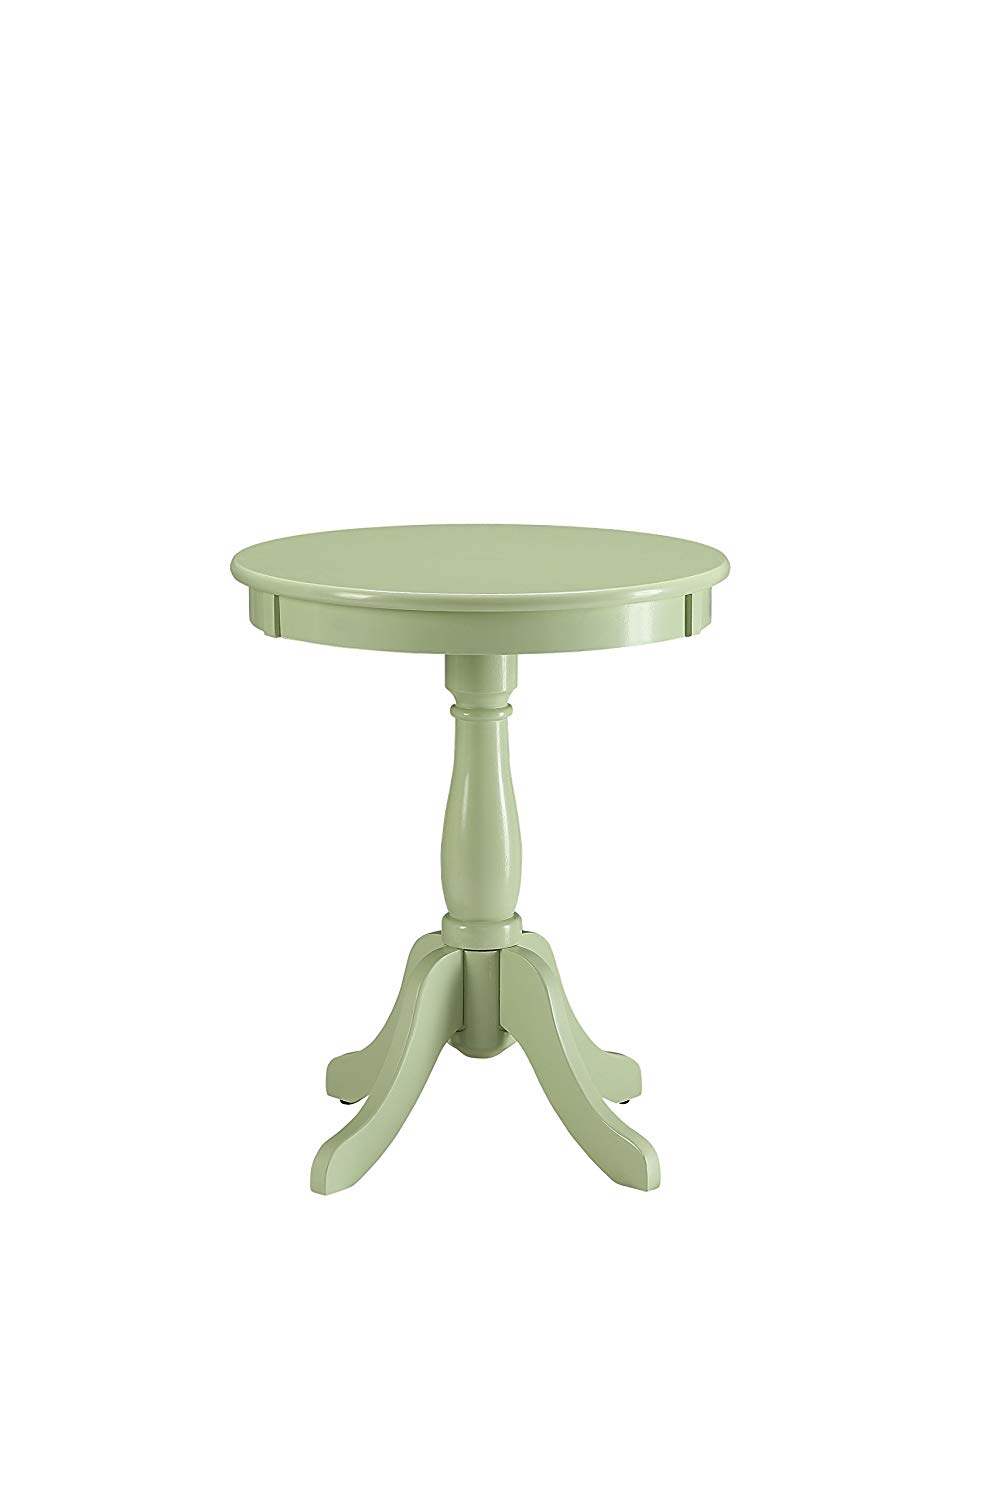 acme furniture alger side table light green one round cardboard accent size kitchen dining white marble and brass coffee designer glass tables drop leaf chairs pier bedroom sets